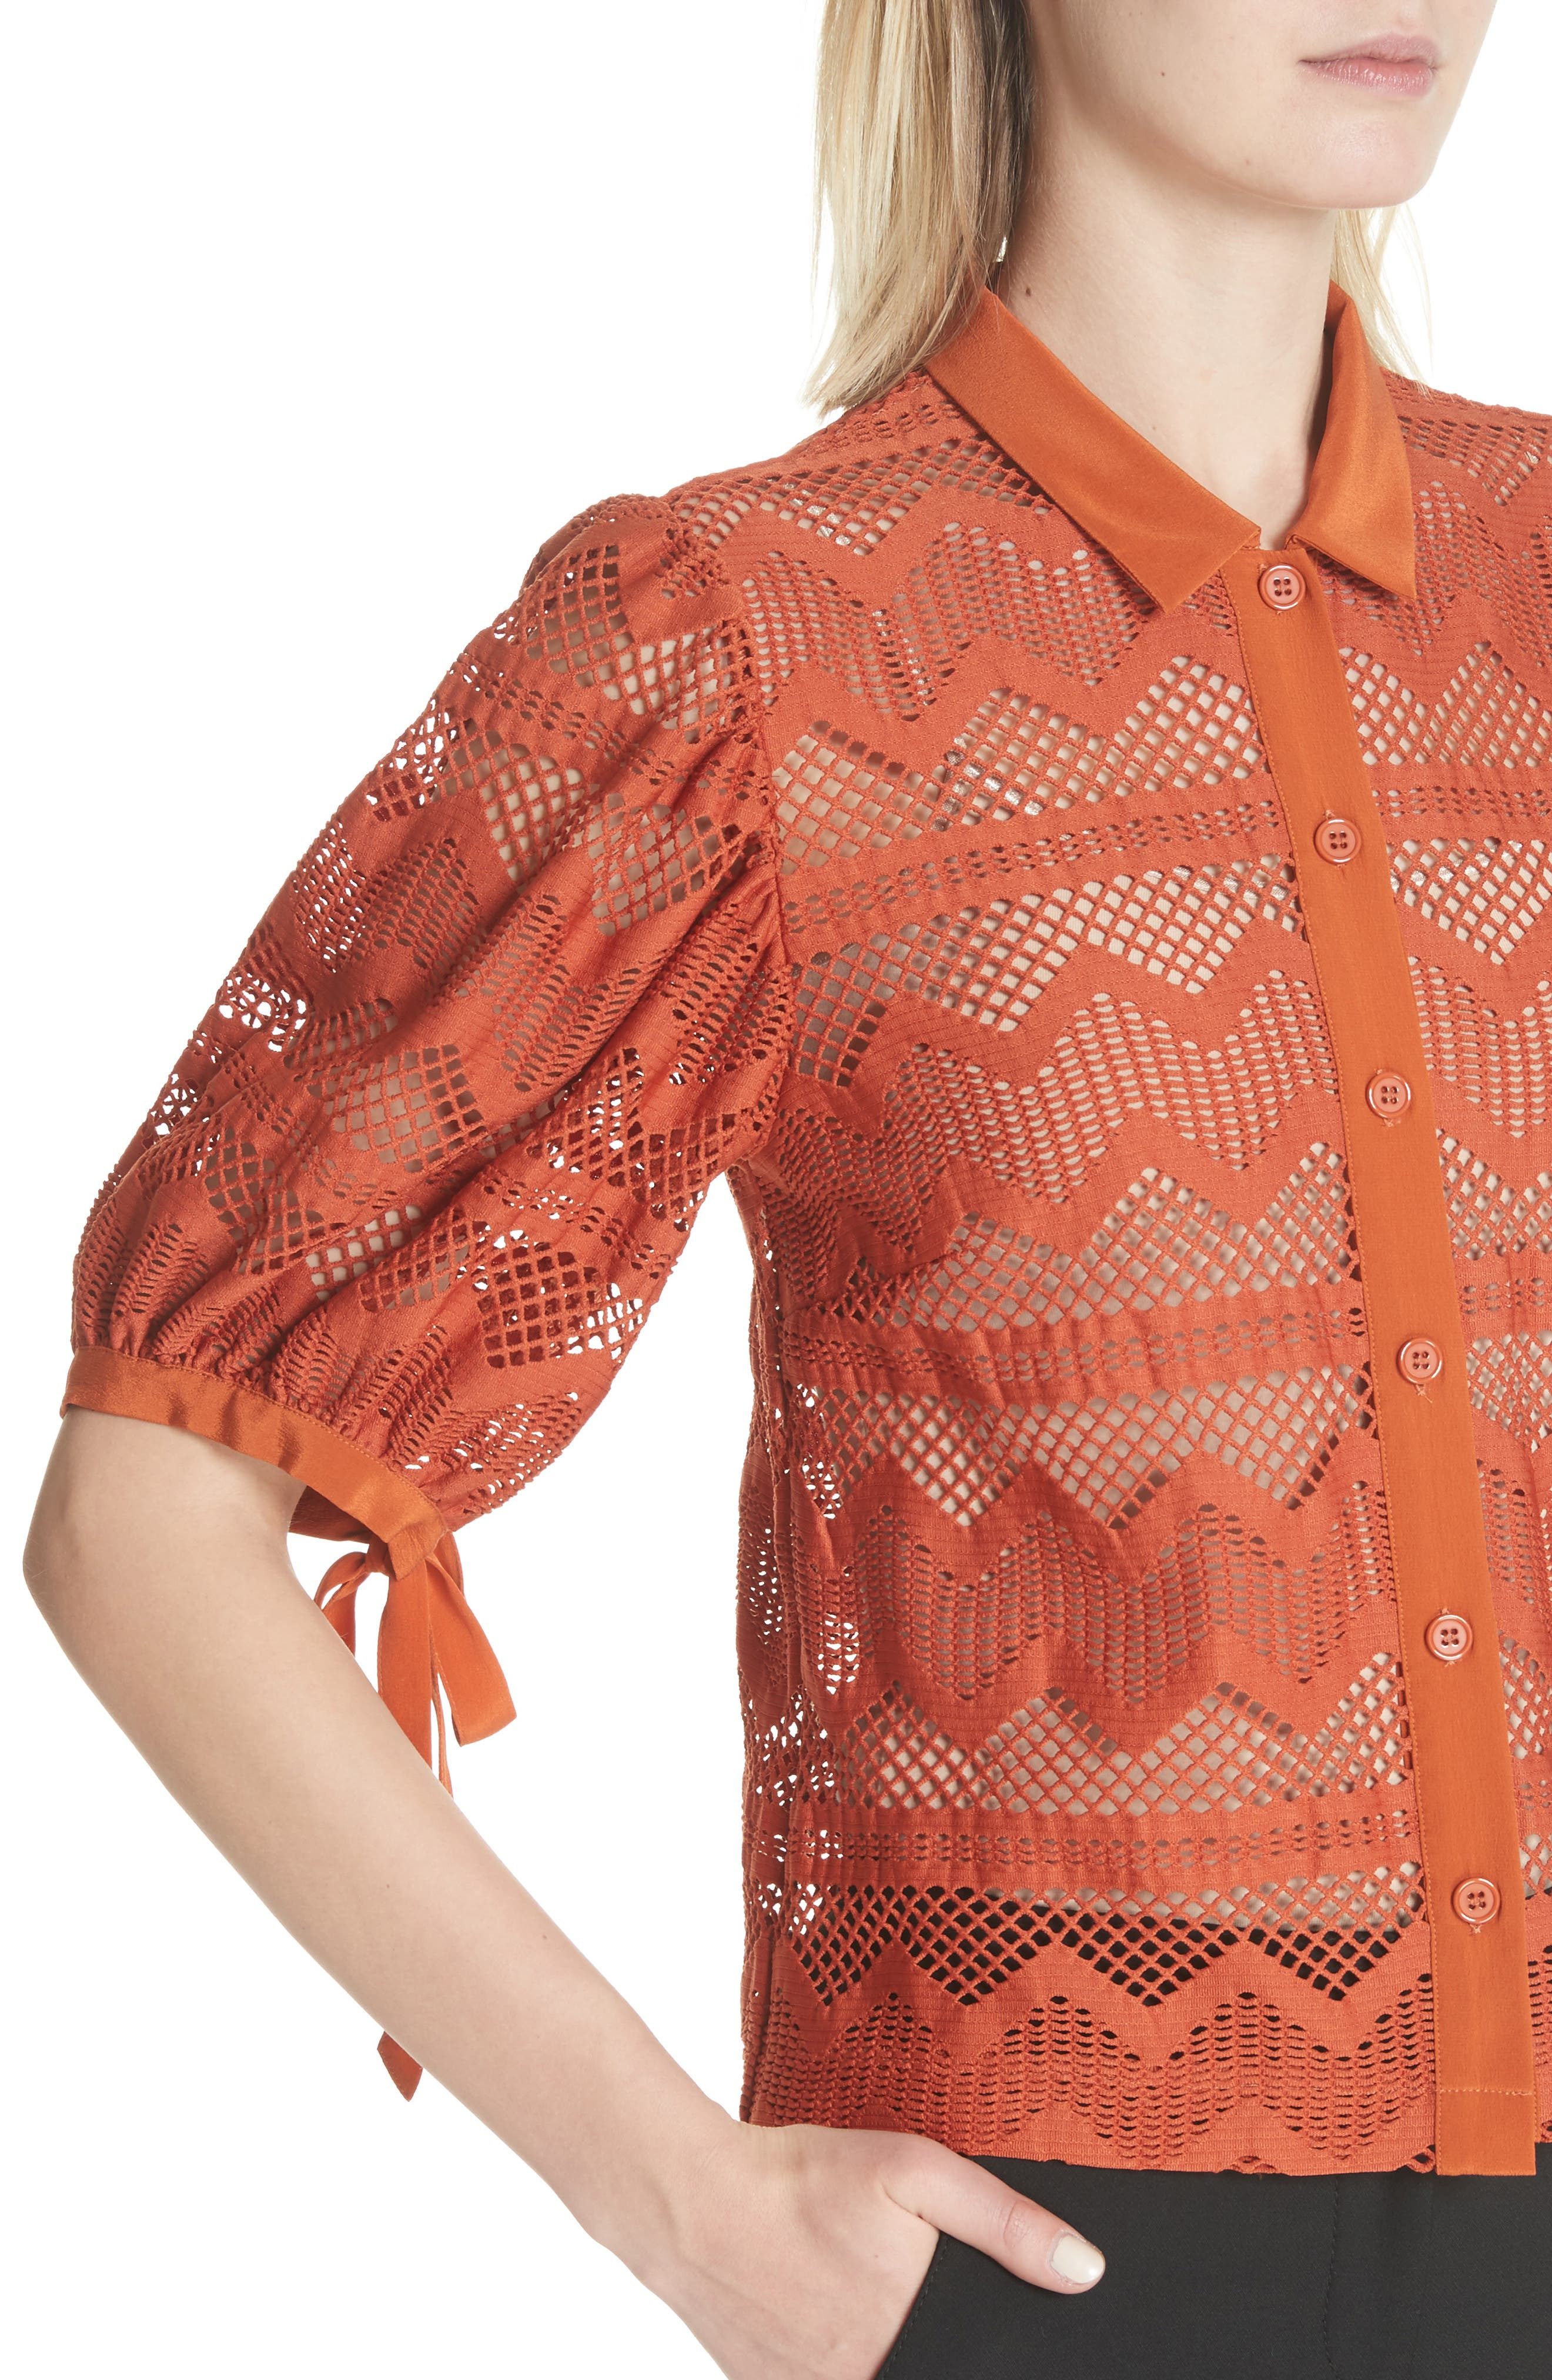 Puff Sleeve Lace Blouse,                             Alternate thumbnail 4, color,                             Brick